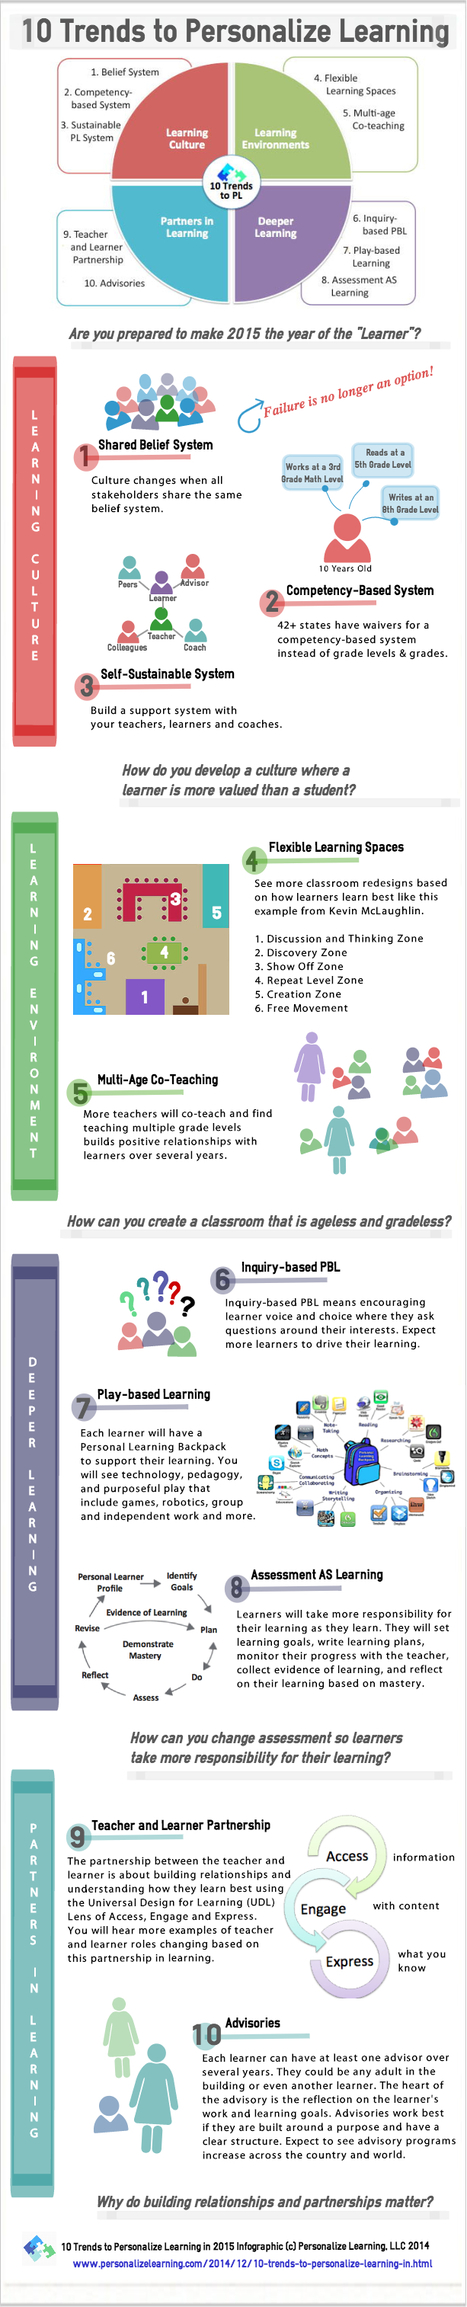 Infographic: 10 Trends to Personalize Learning in 2015 | Studying Teaching and Learning | Scoop.it